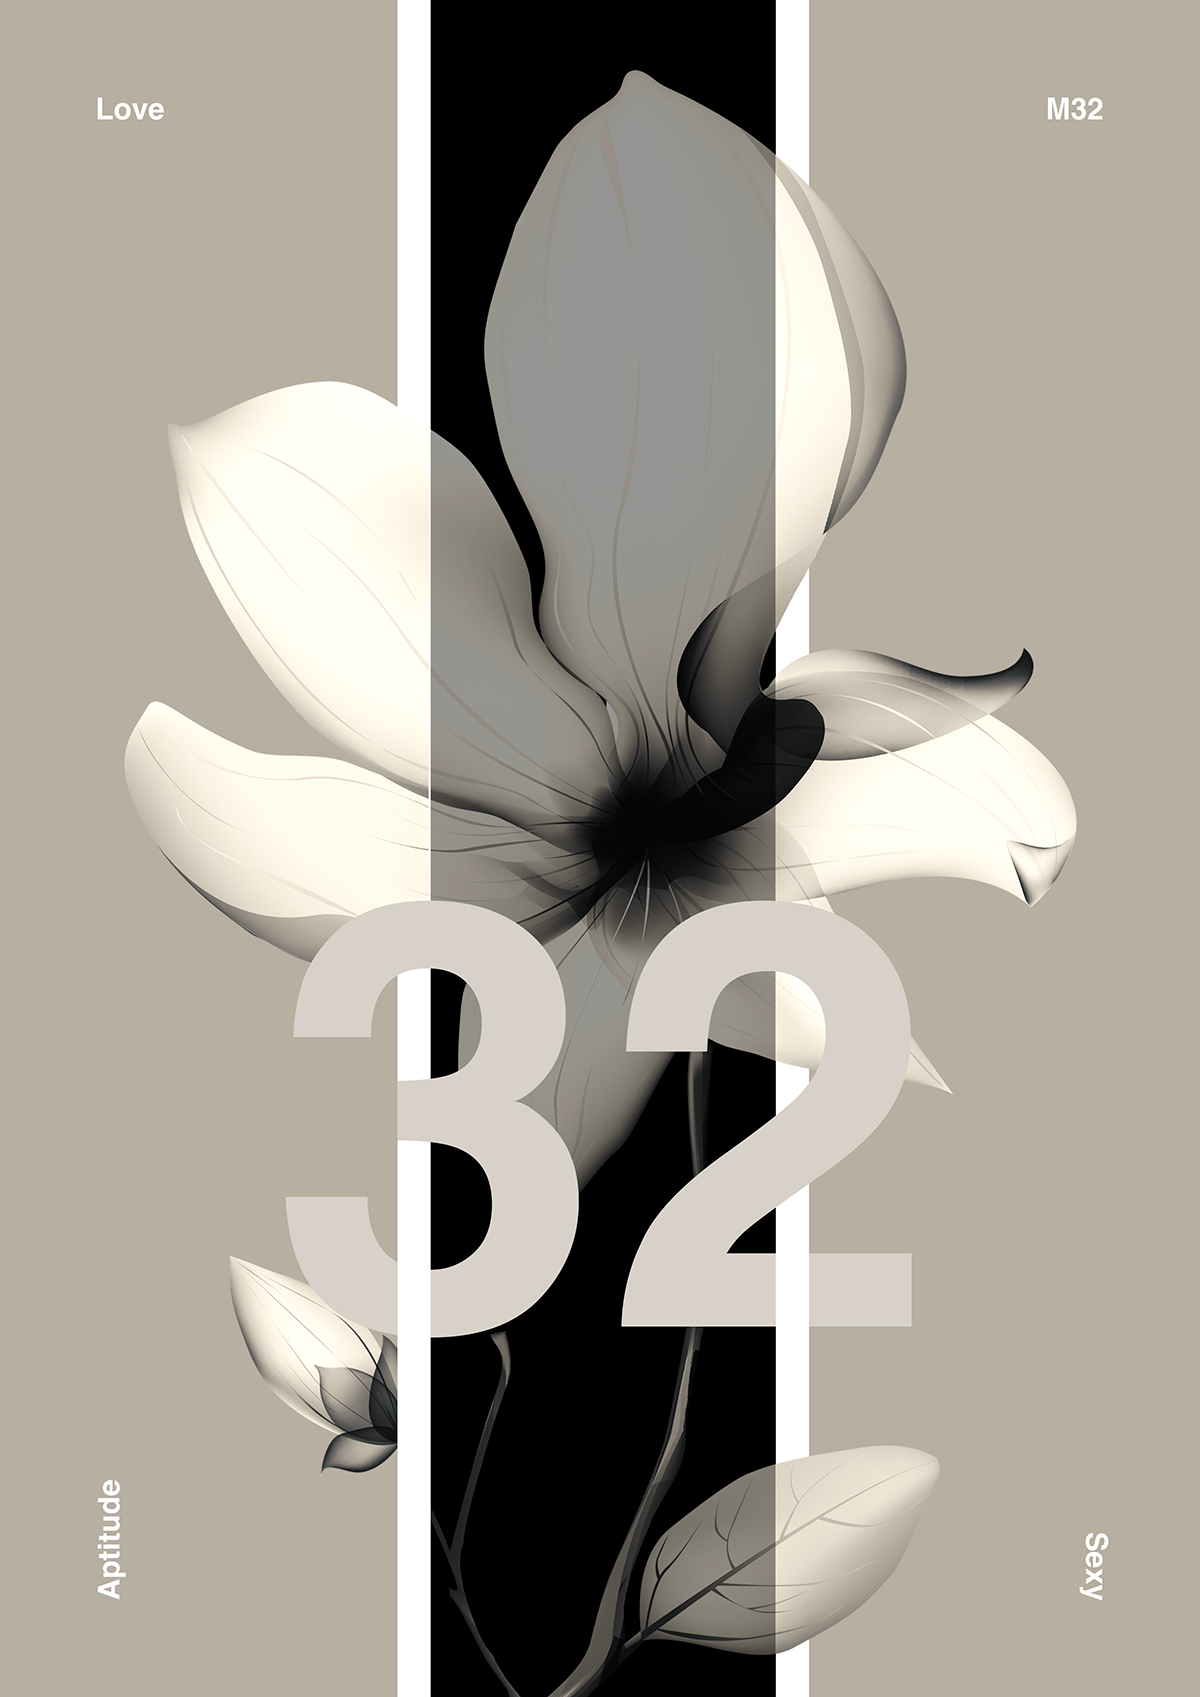 Posters by Xavier Esclusa M32 on Behance